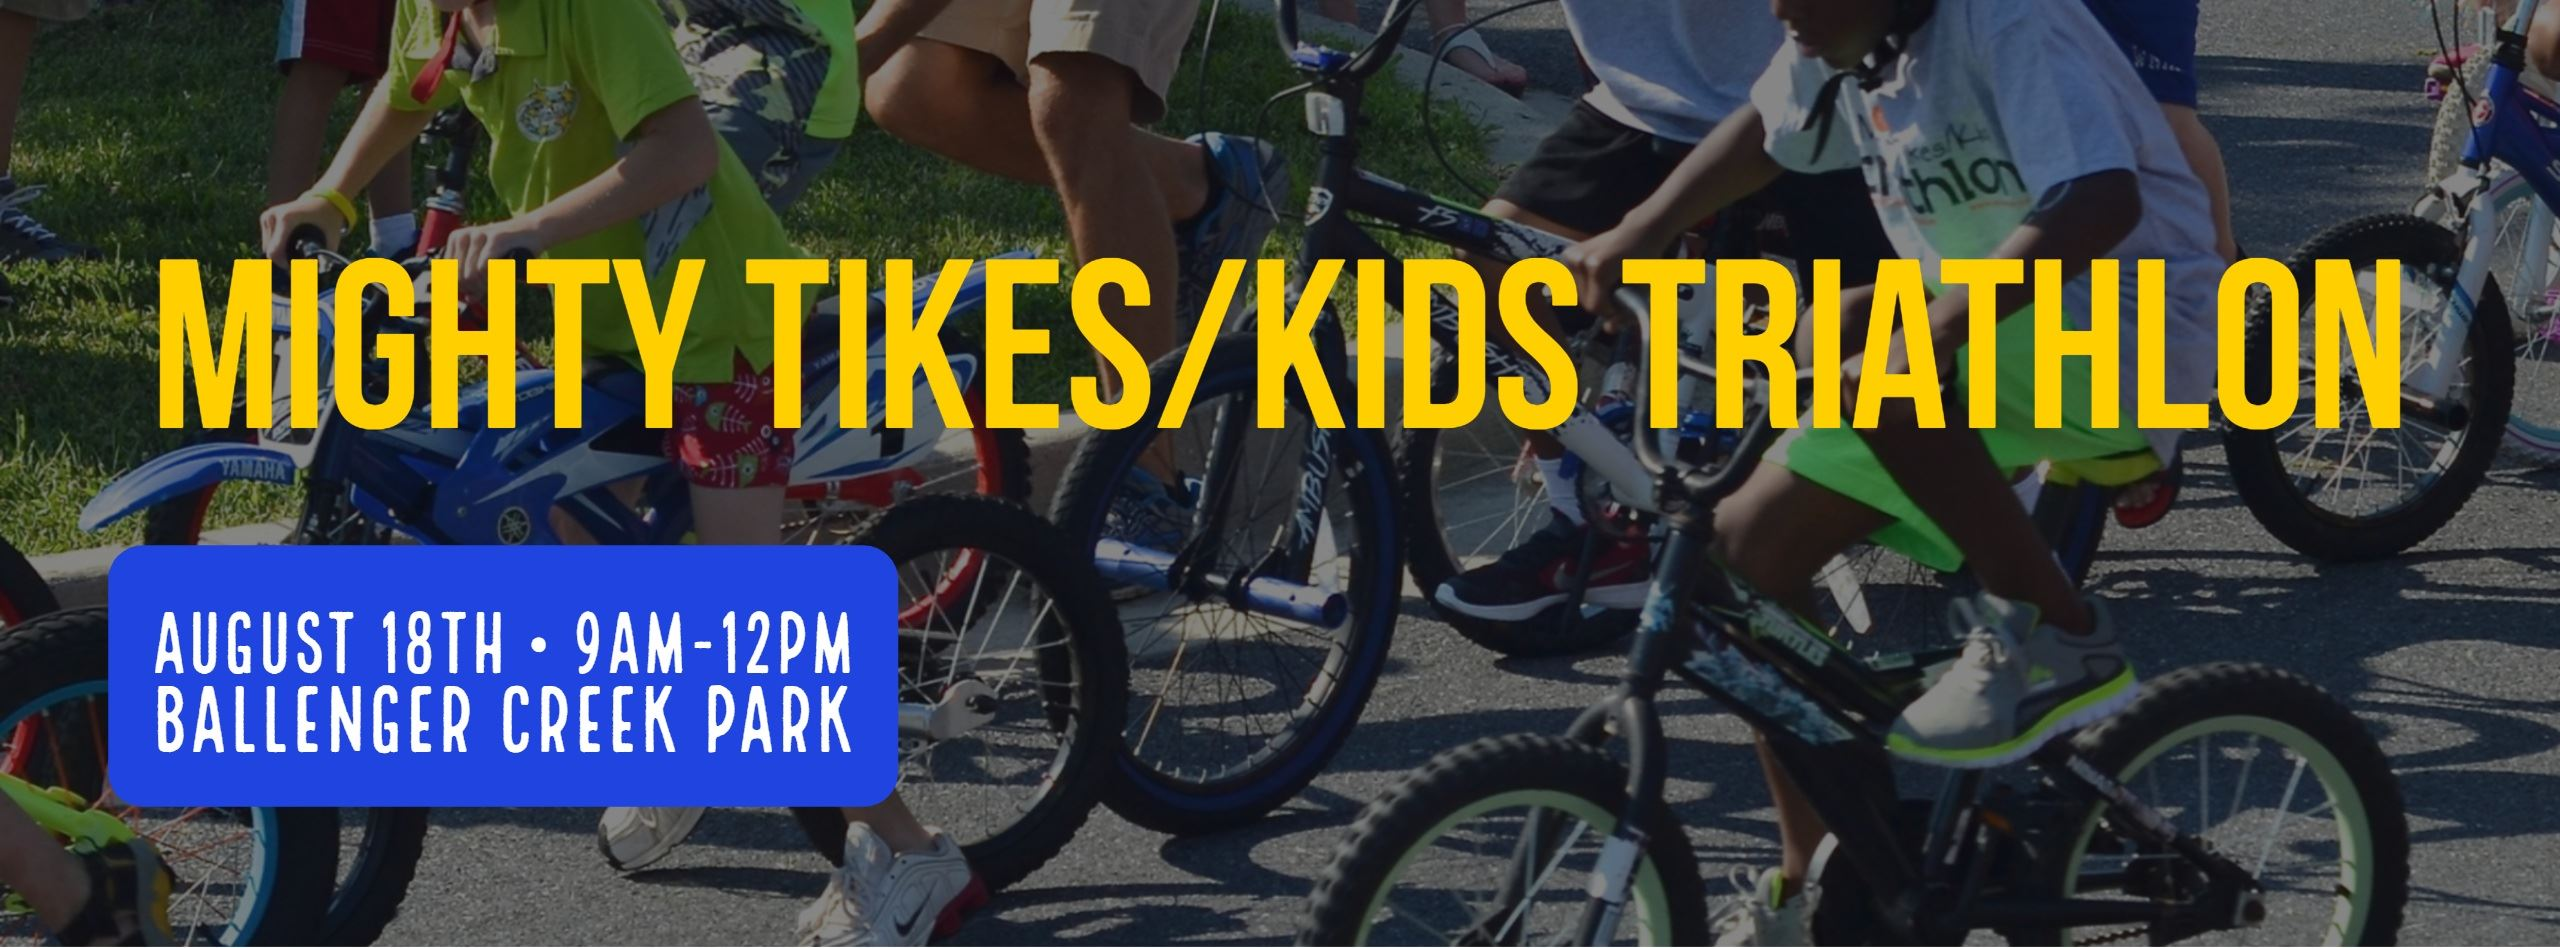 Mighty Tikes/Kids Triathlon